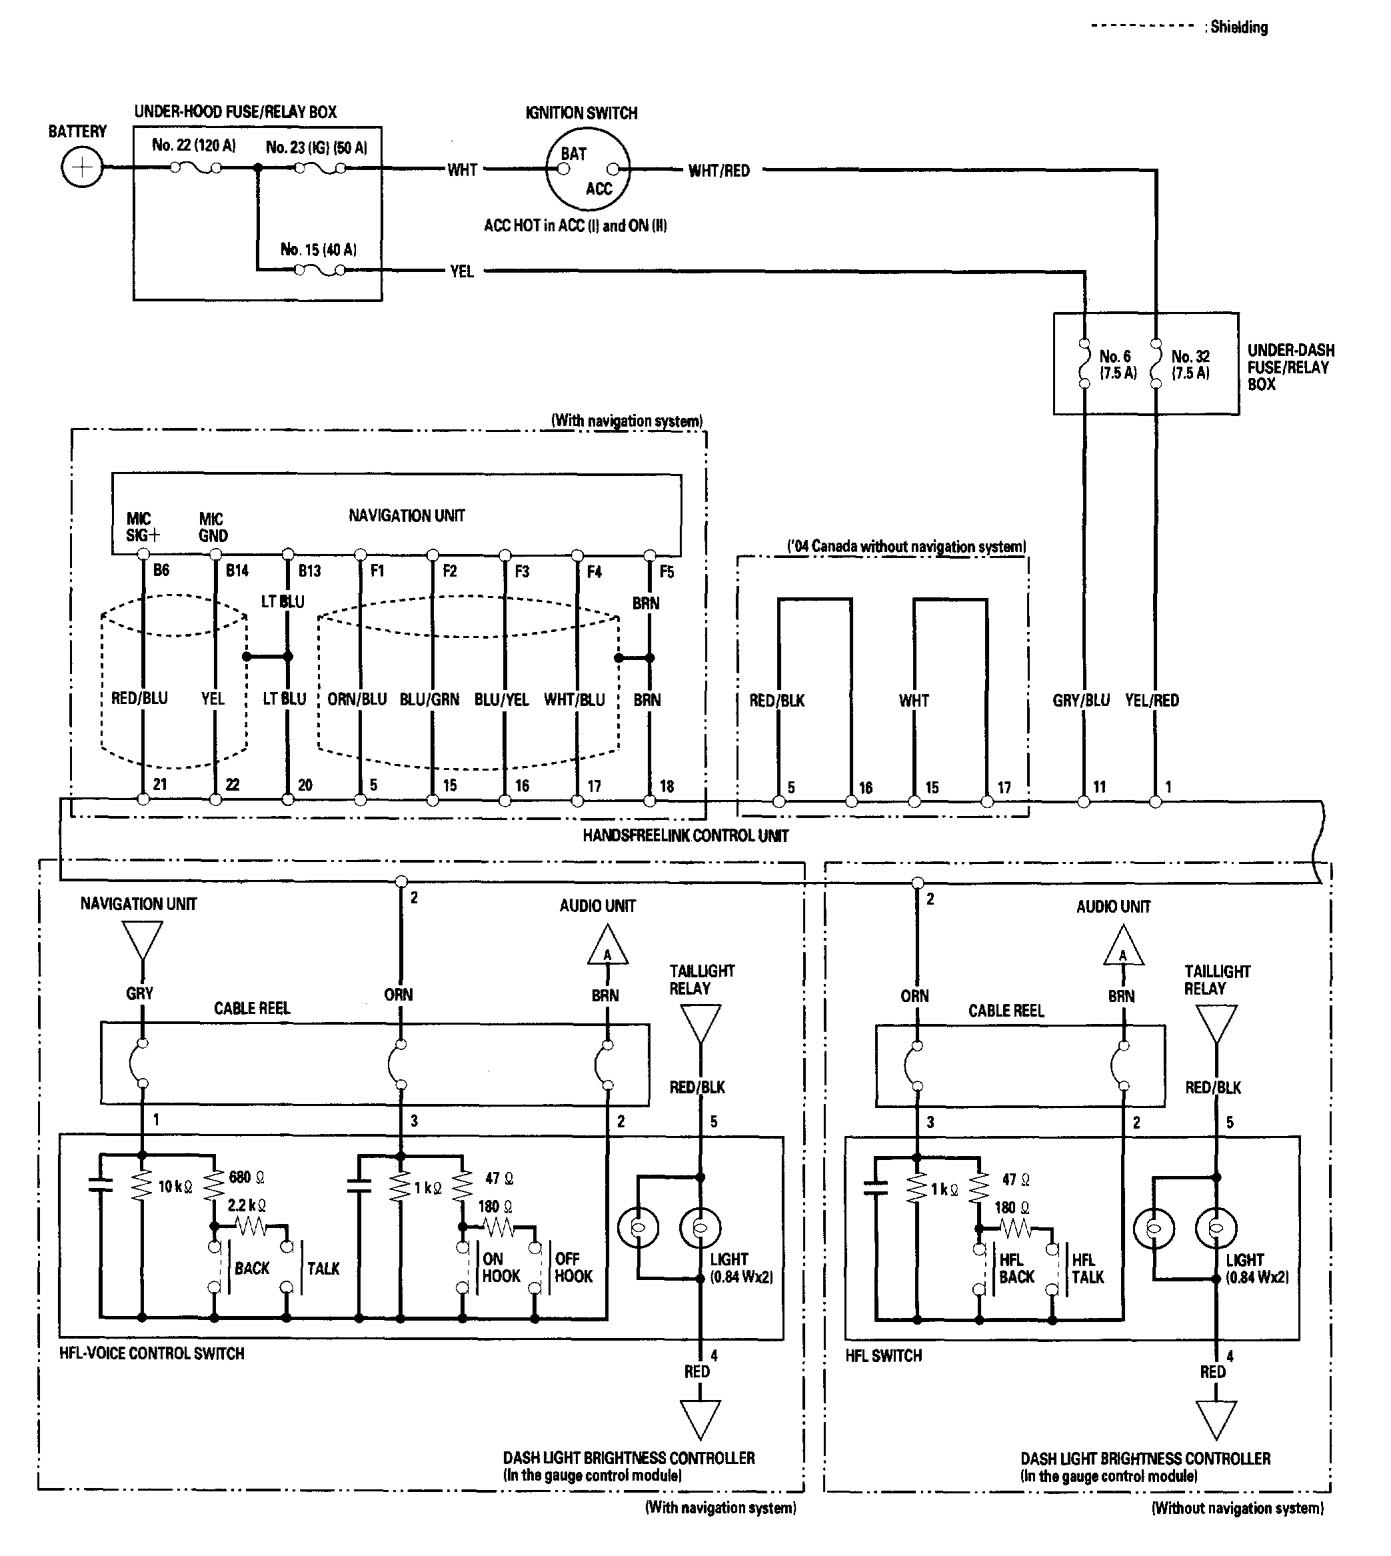 hight resolution of acura tl 2006 wiring diagrams hands free link system 2006 acura tl radio wiring diagram acura tl 2006 wiring diagram